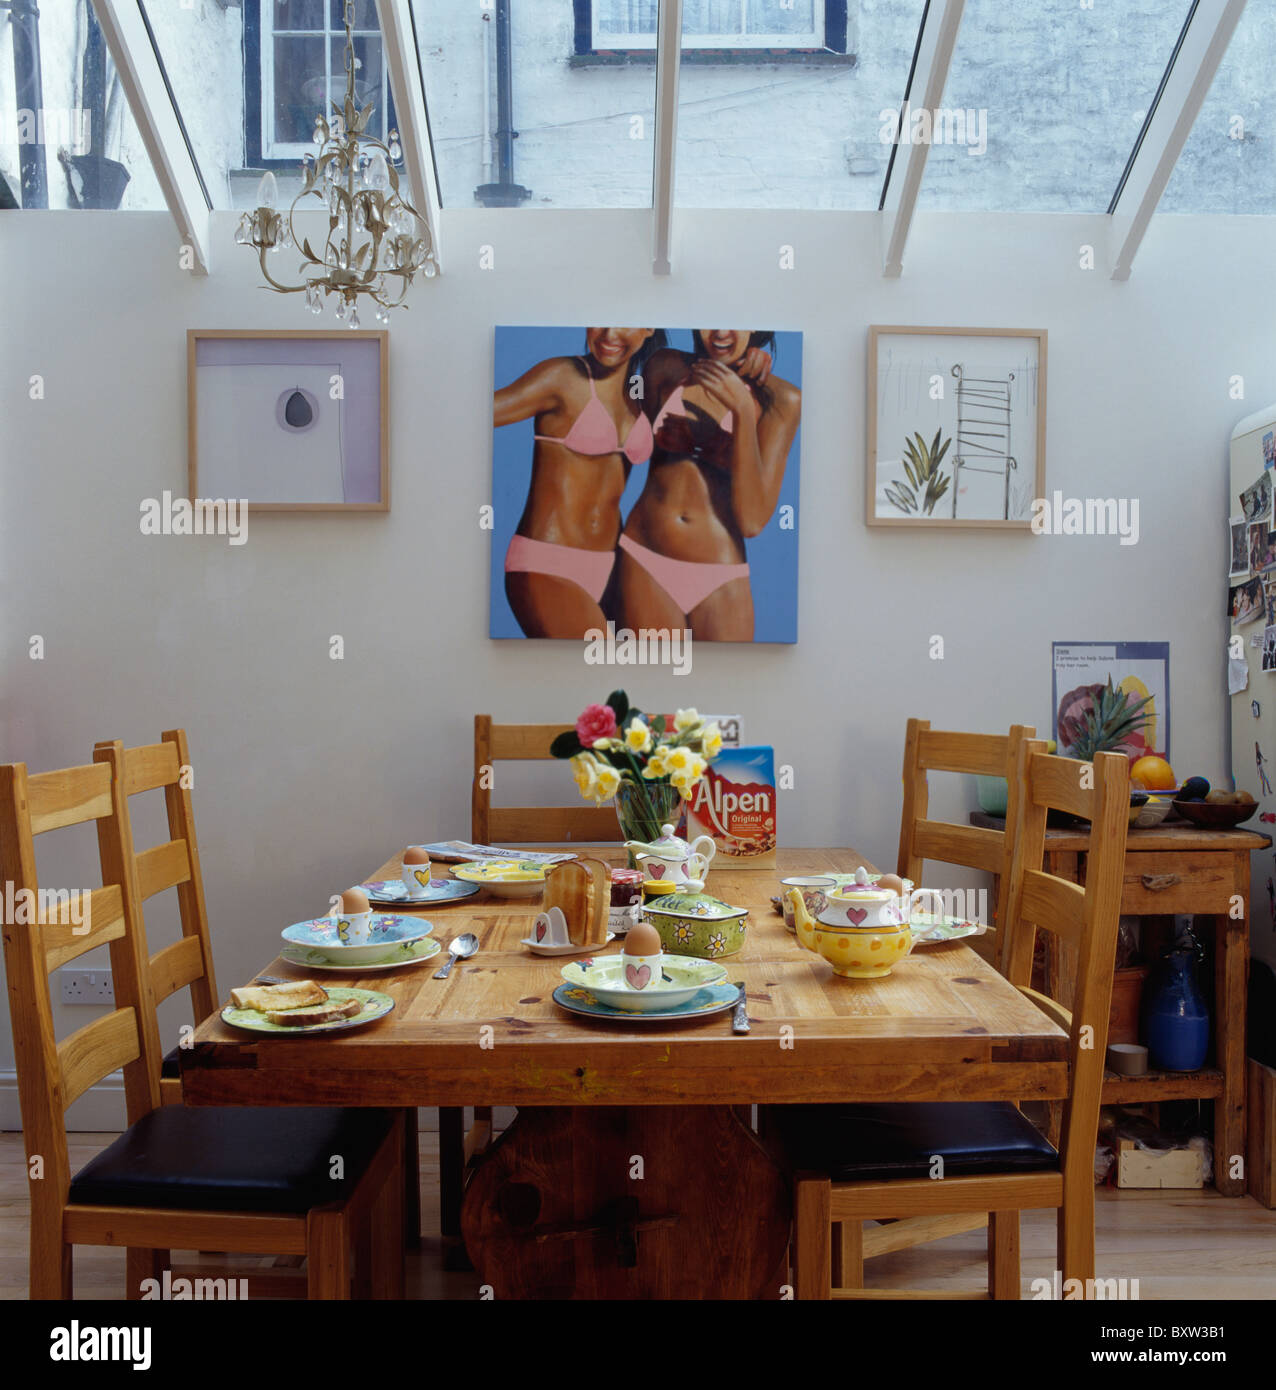 Large Picture Of Girls In Bikinis On Wall Small Dining Room Extension With Simple Pine Table Set For Breakfast